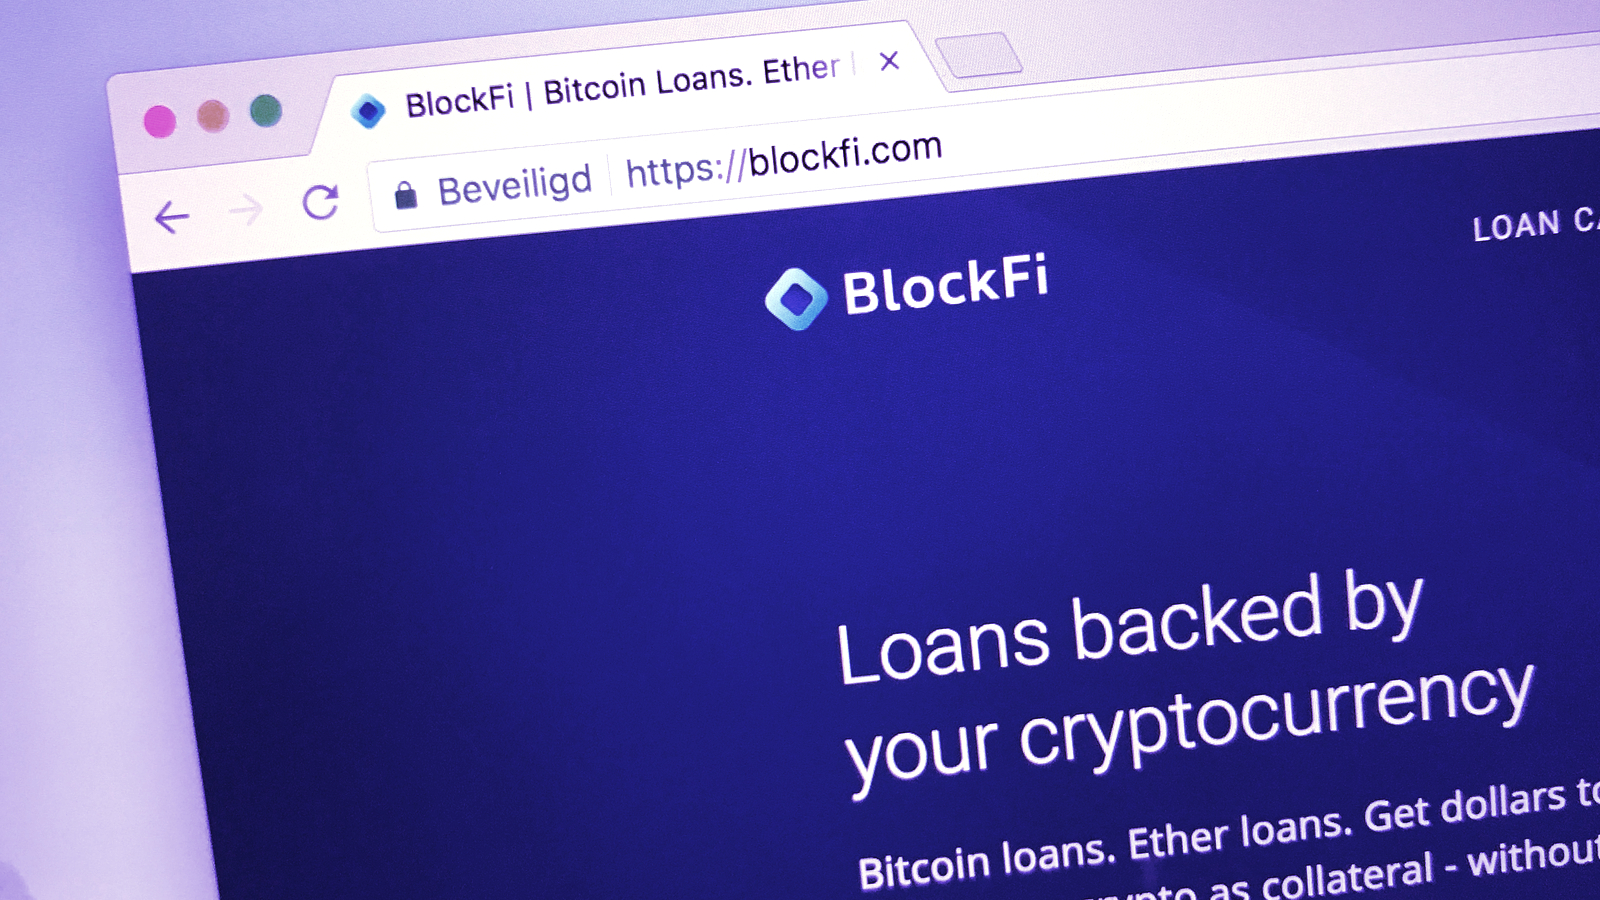 BlockFi Hit with Cease and Desist in New Jersey